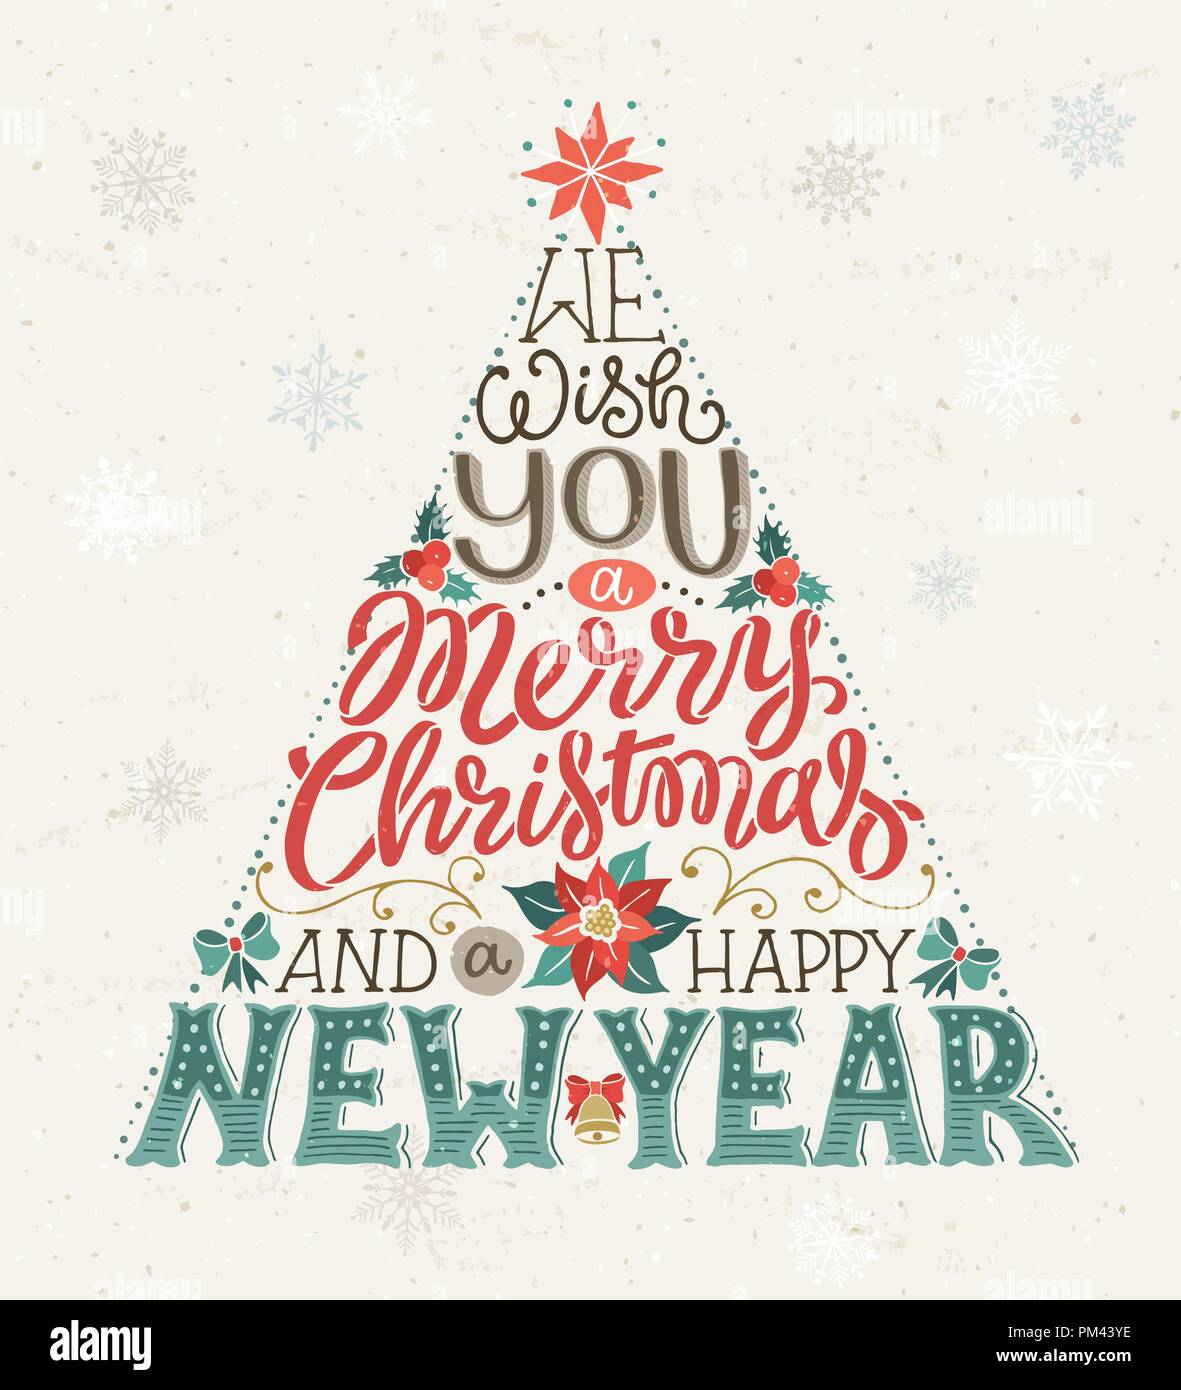 hand drawn christmas tree lettering we wish you a merry christmas and a happy new year greeting card vector illustration